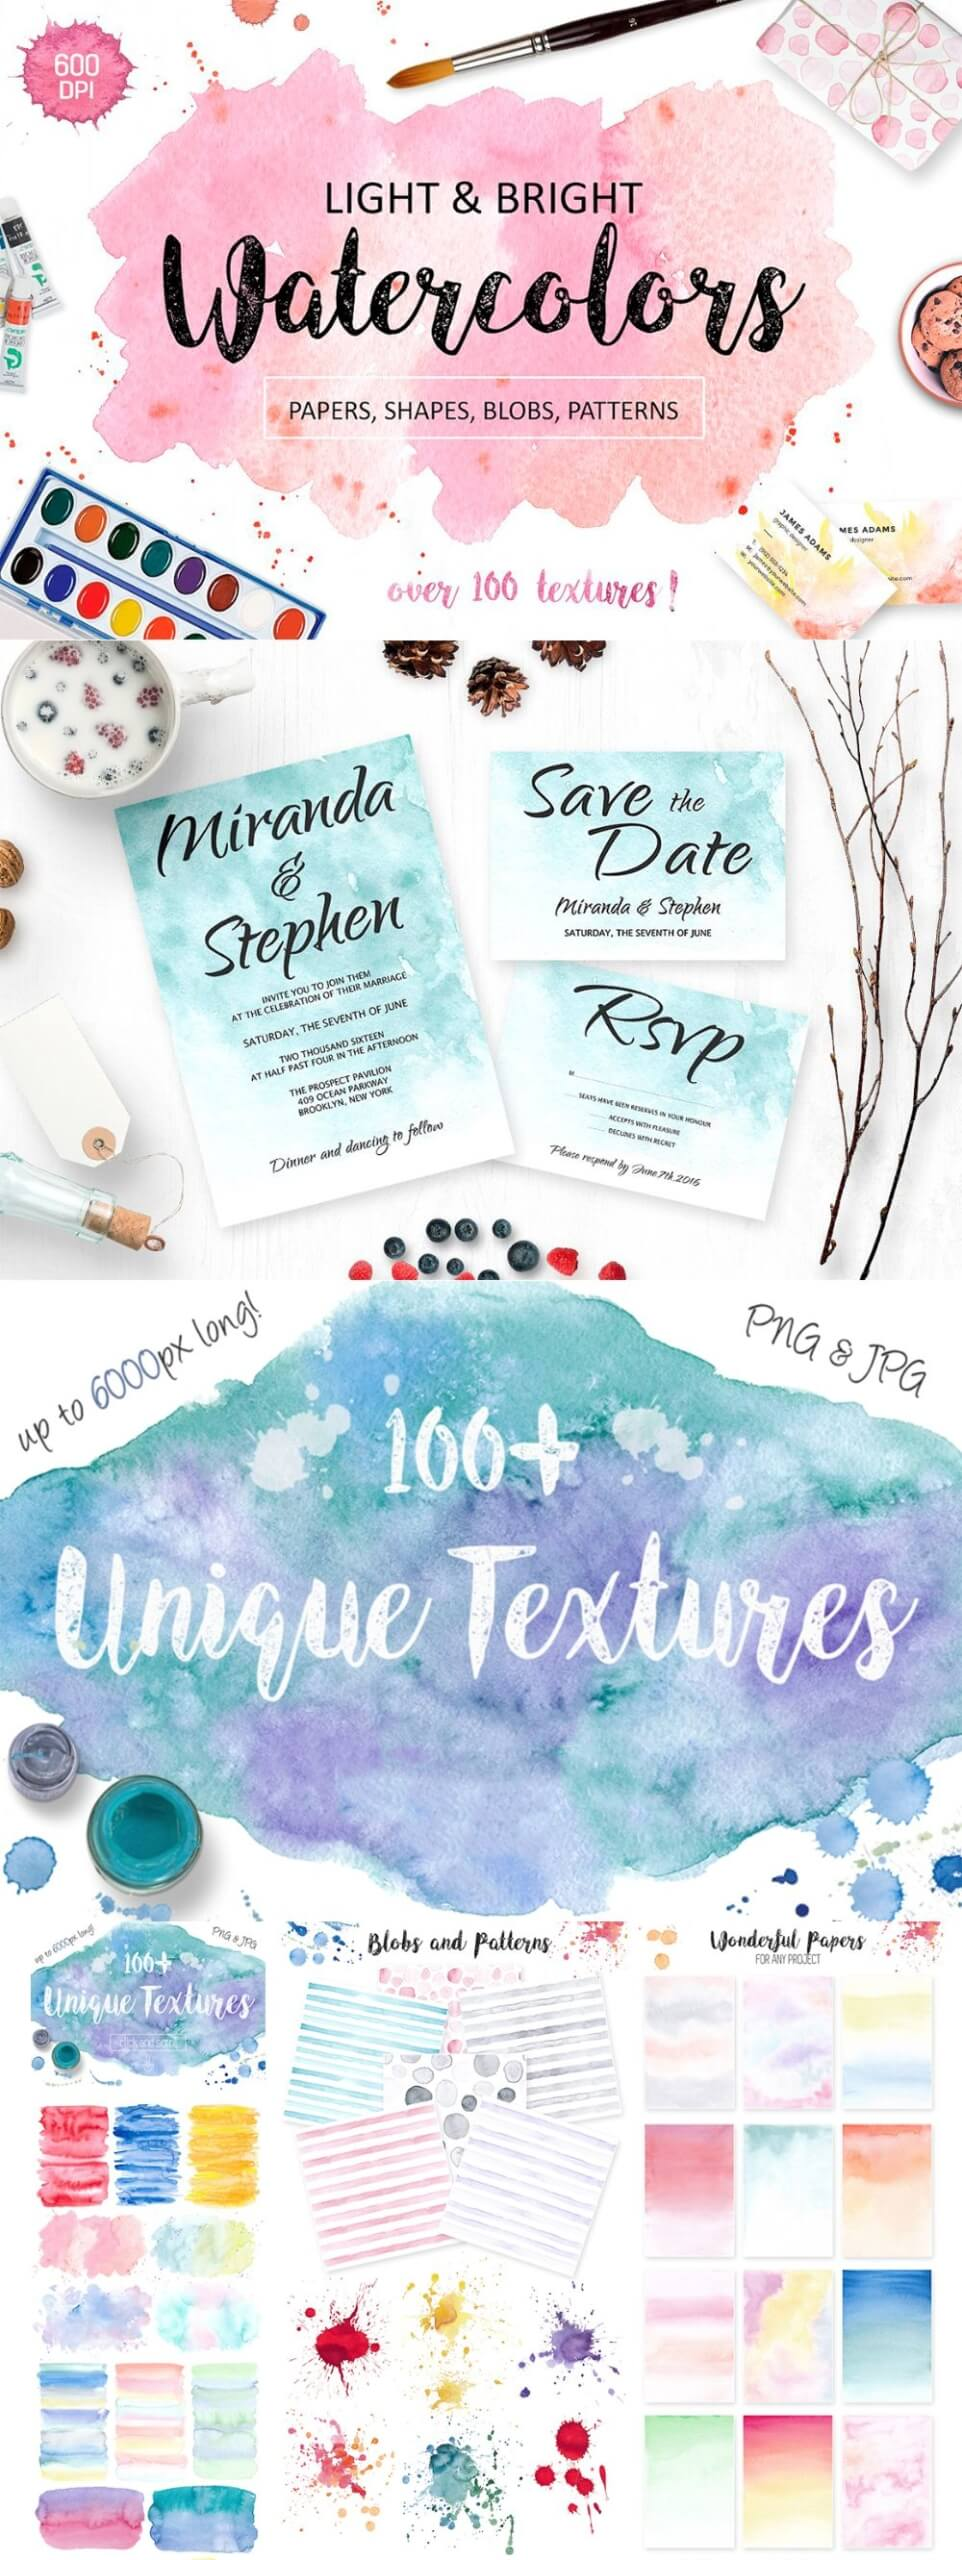 Light & Bright Watercolor Textures